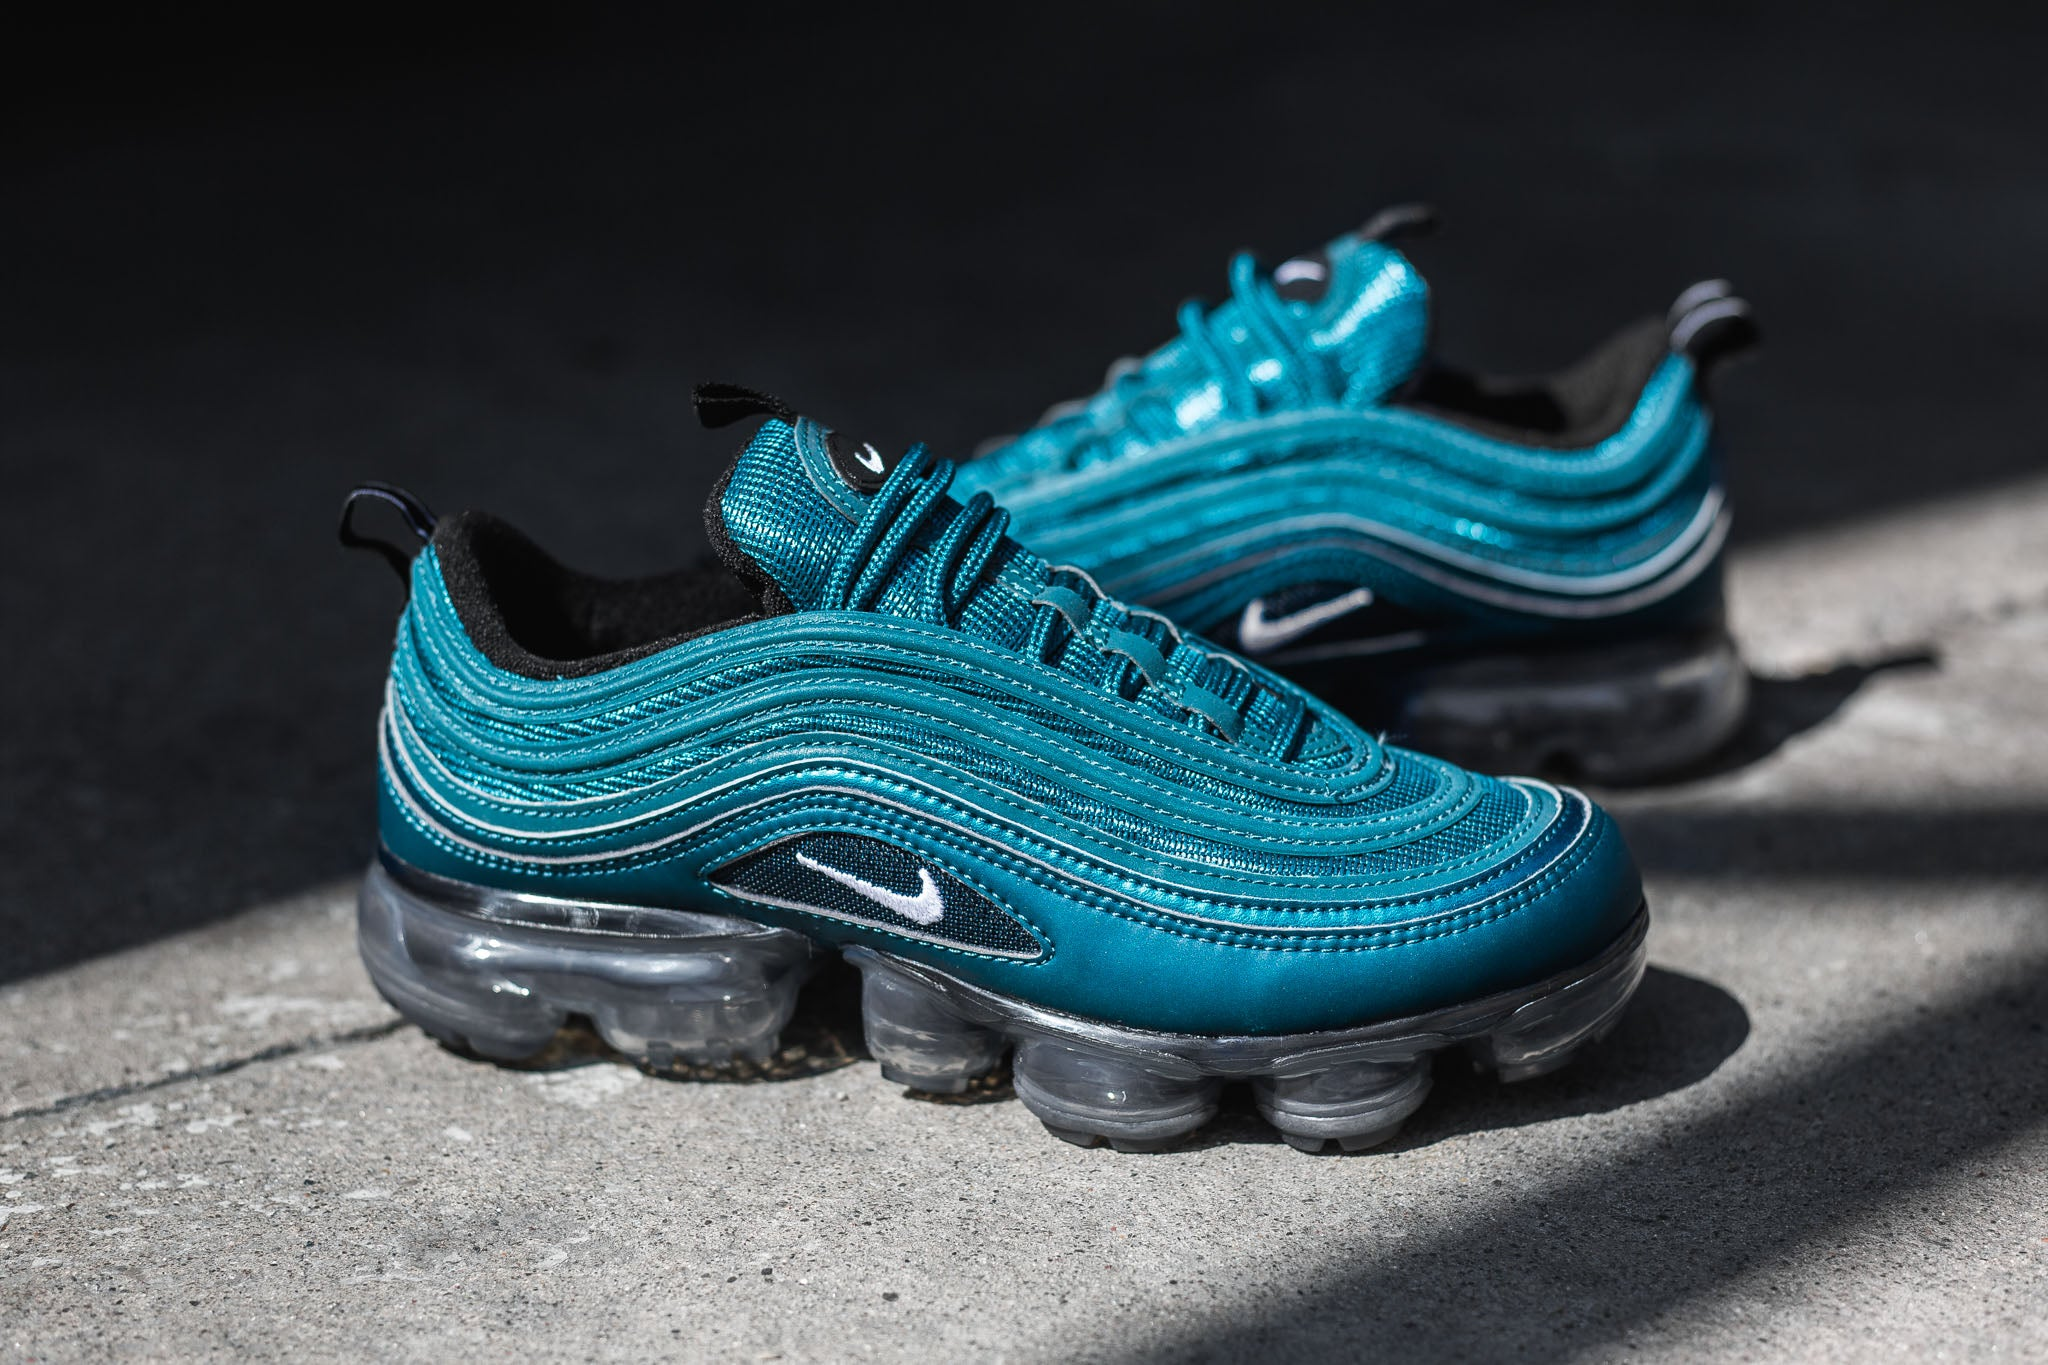 newest f4514 8a05b Women's Air Vapormax 97 'Metallic Dark Sea' 05.24.18 ...